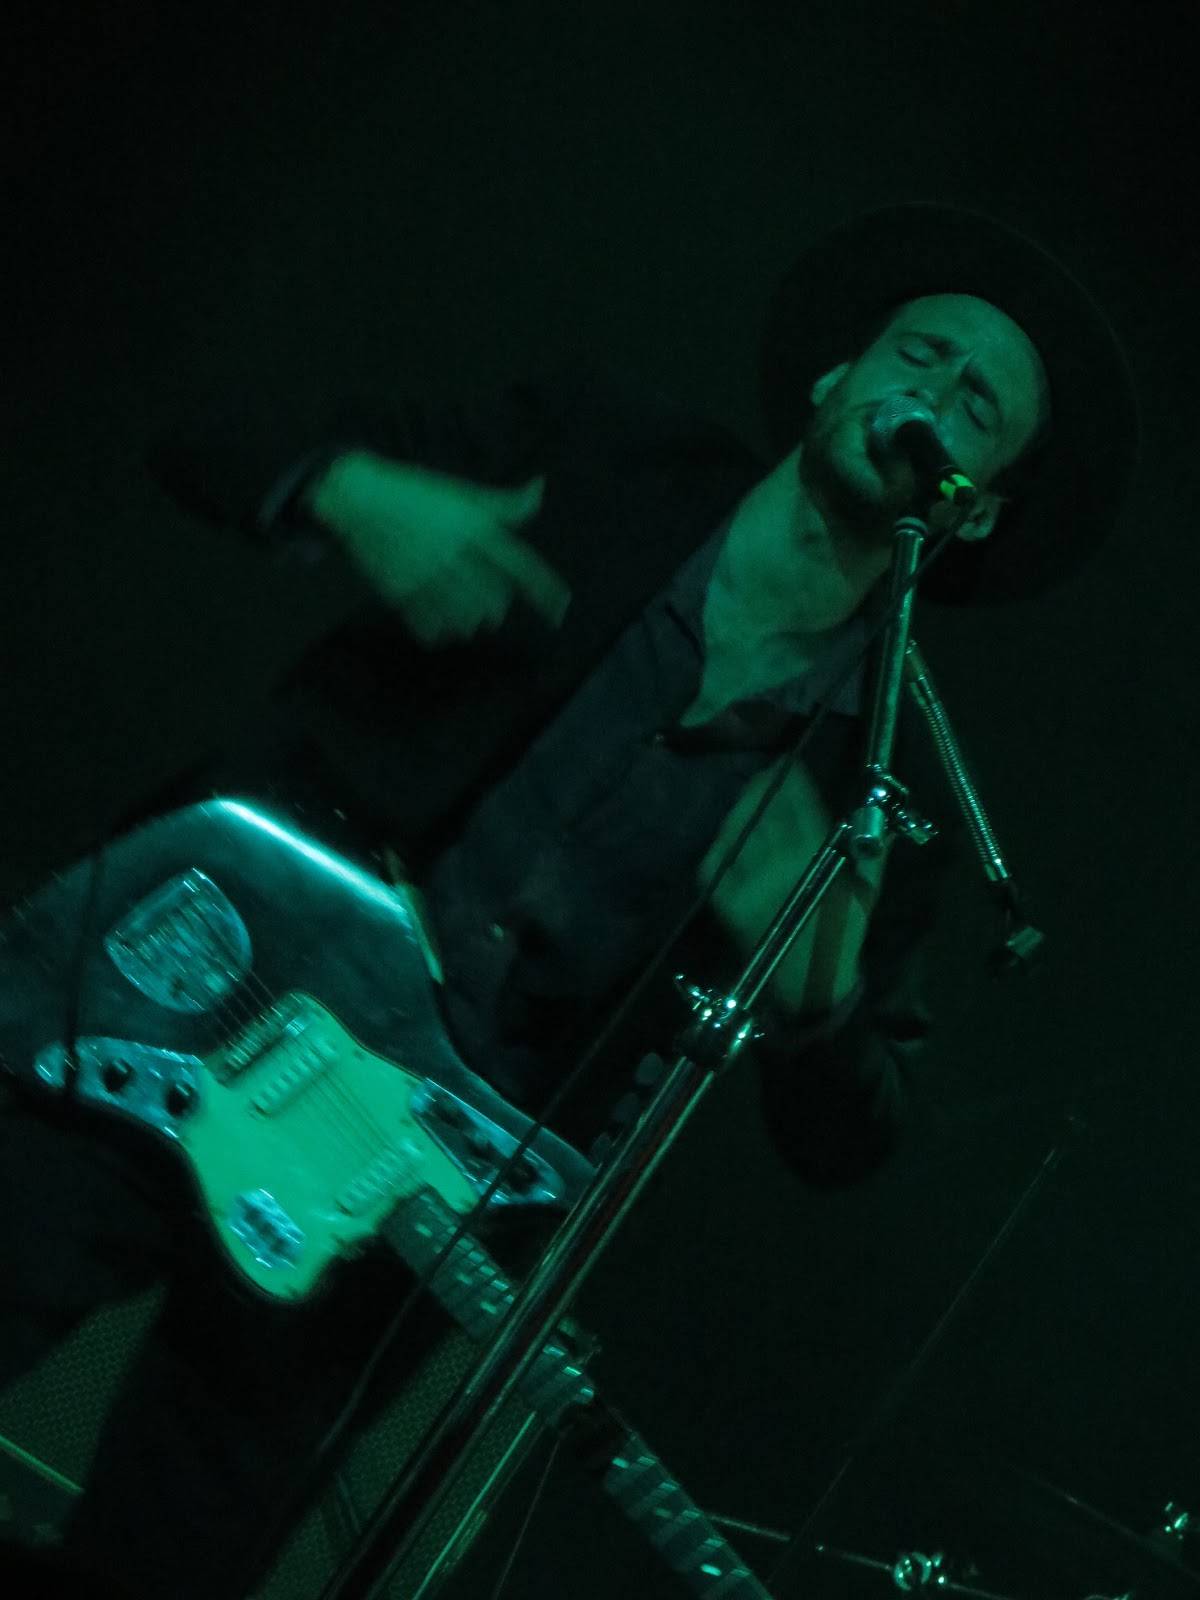 ronald says memoirs of a music addict on stage the veils